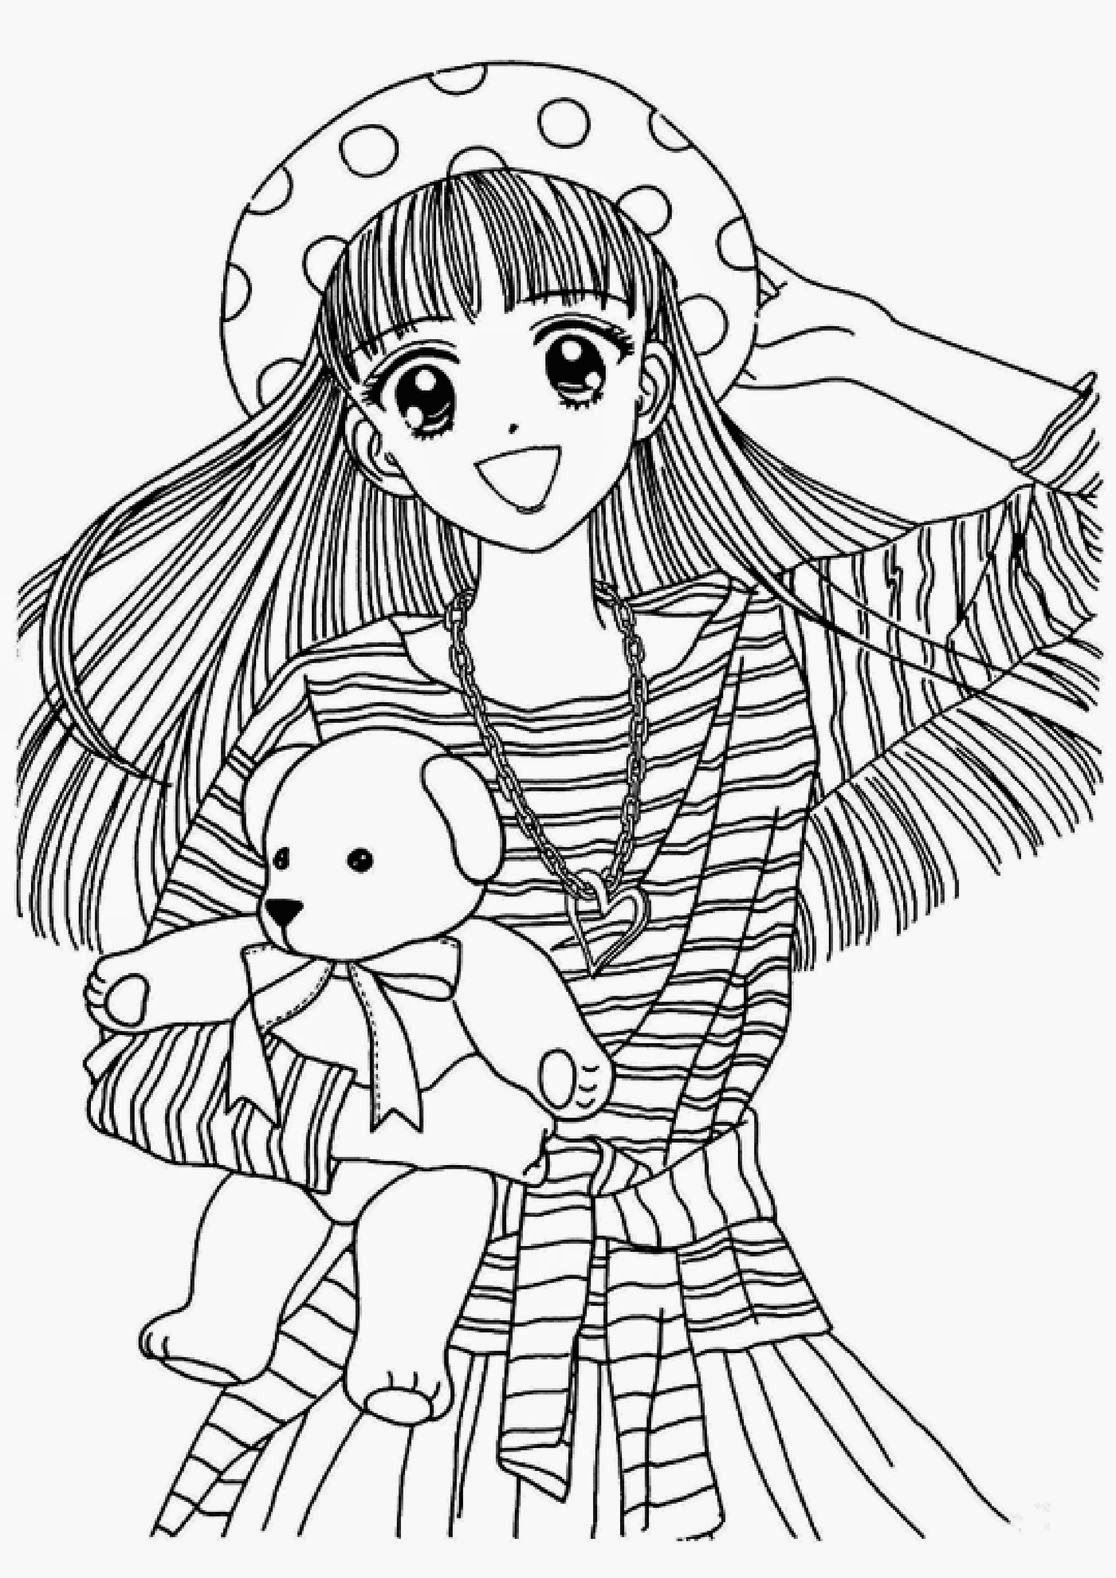 coloring pages anime anime coloring pages best coloring pages for kids pages anime coloring